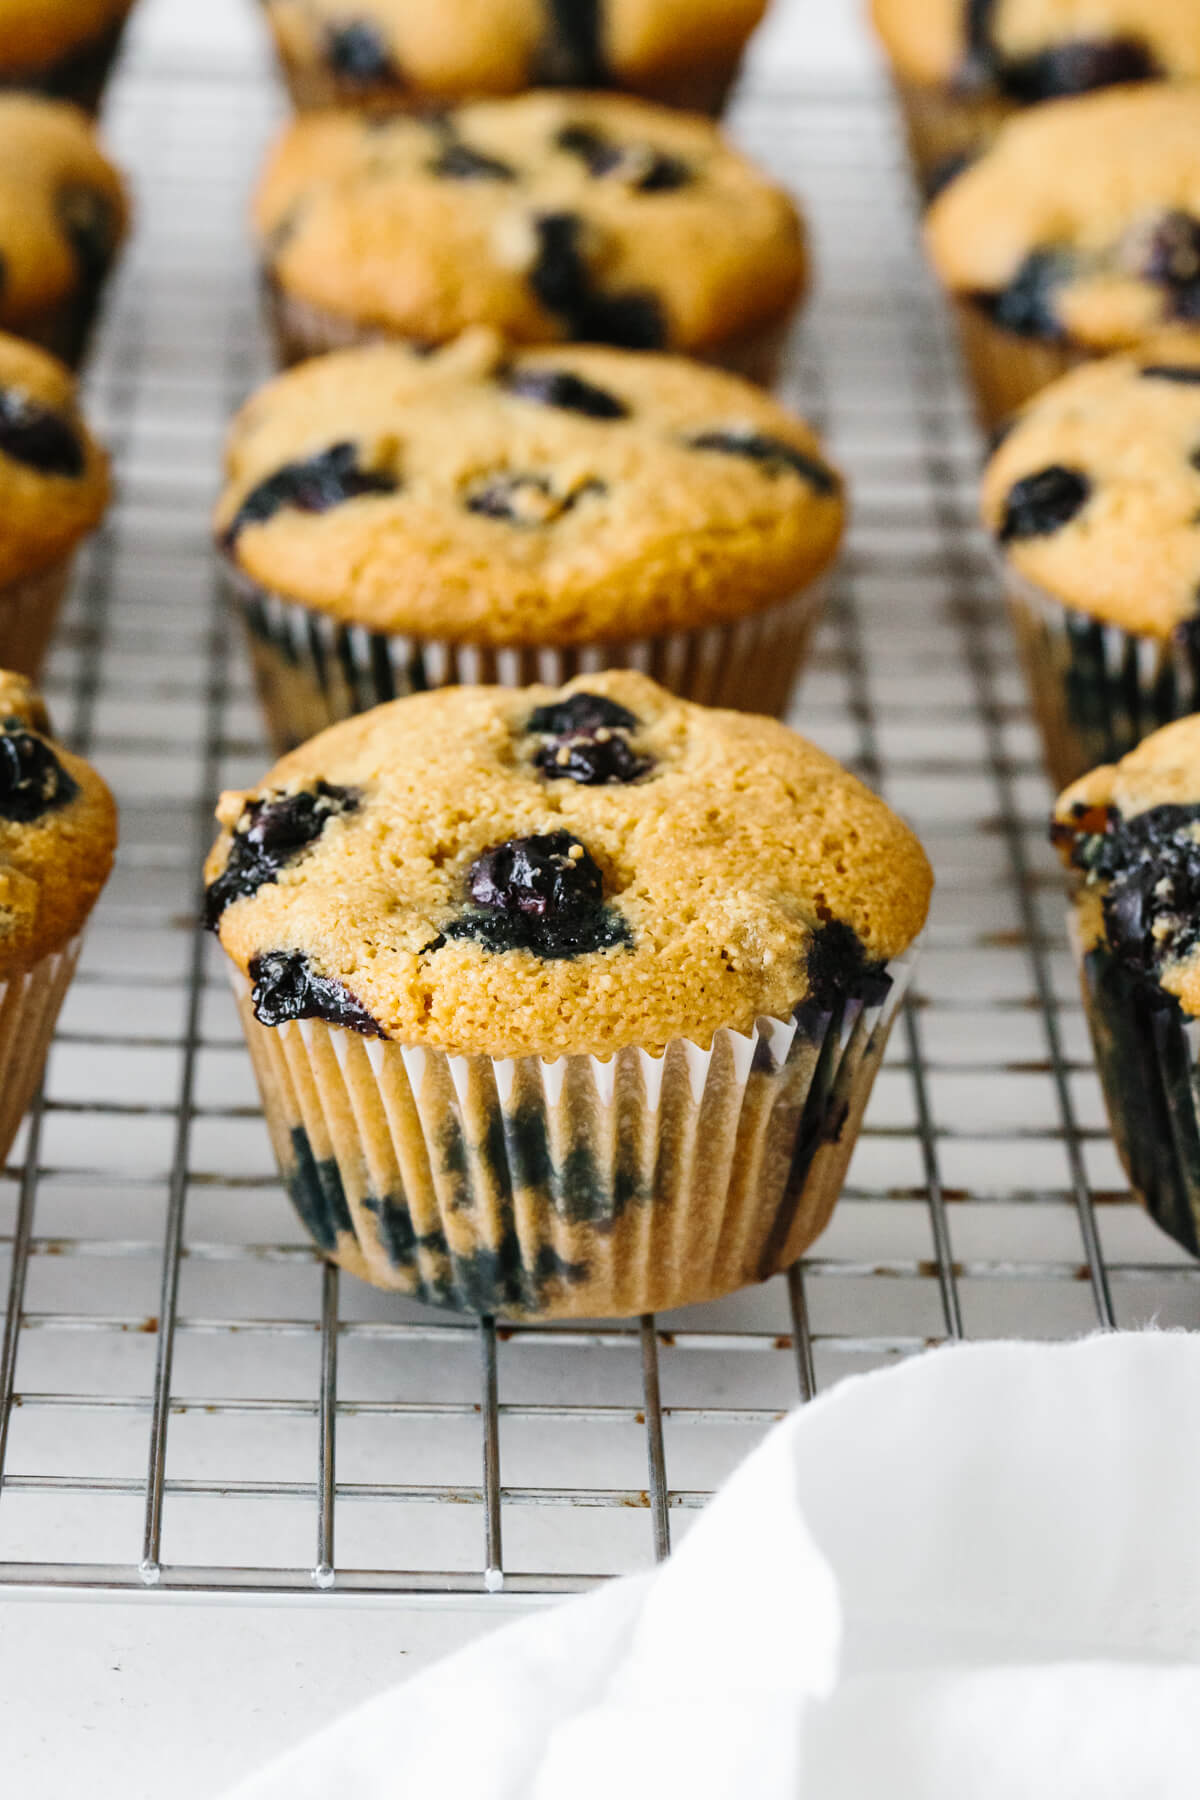 Paleo blueberry muffins on a cooling rack.